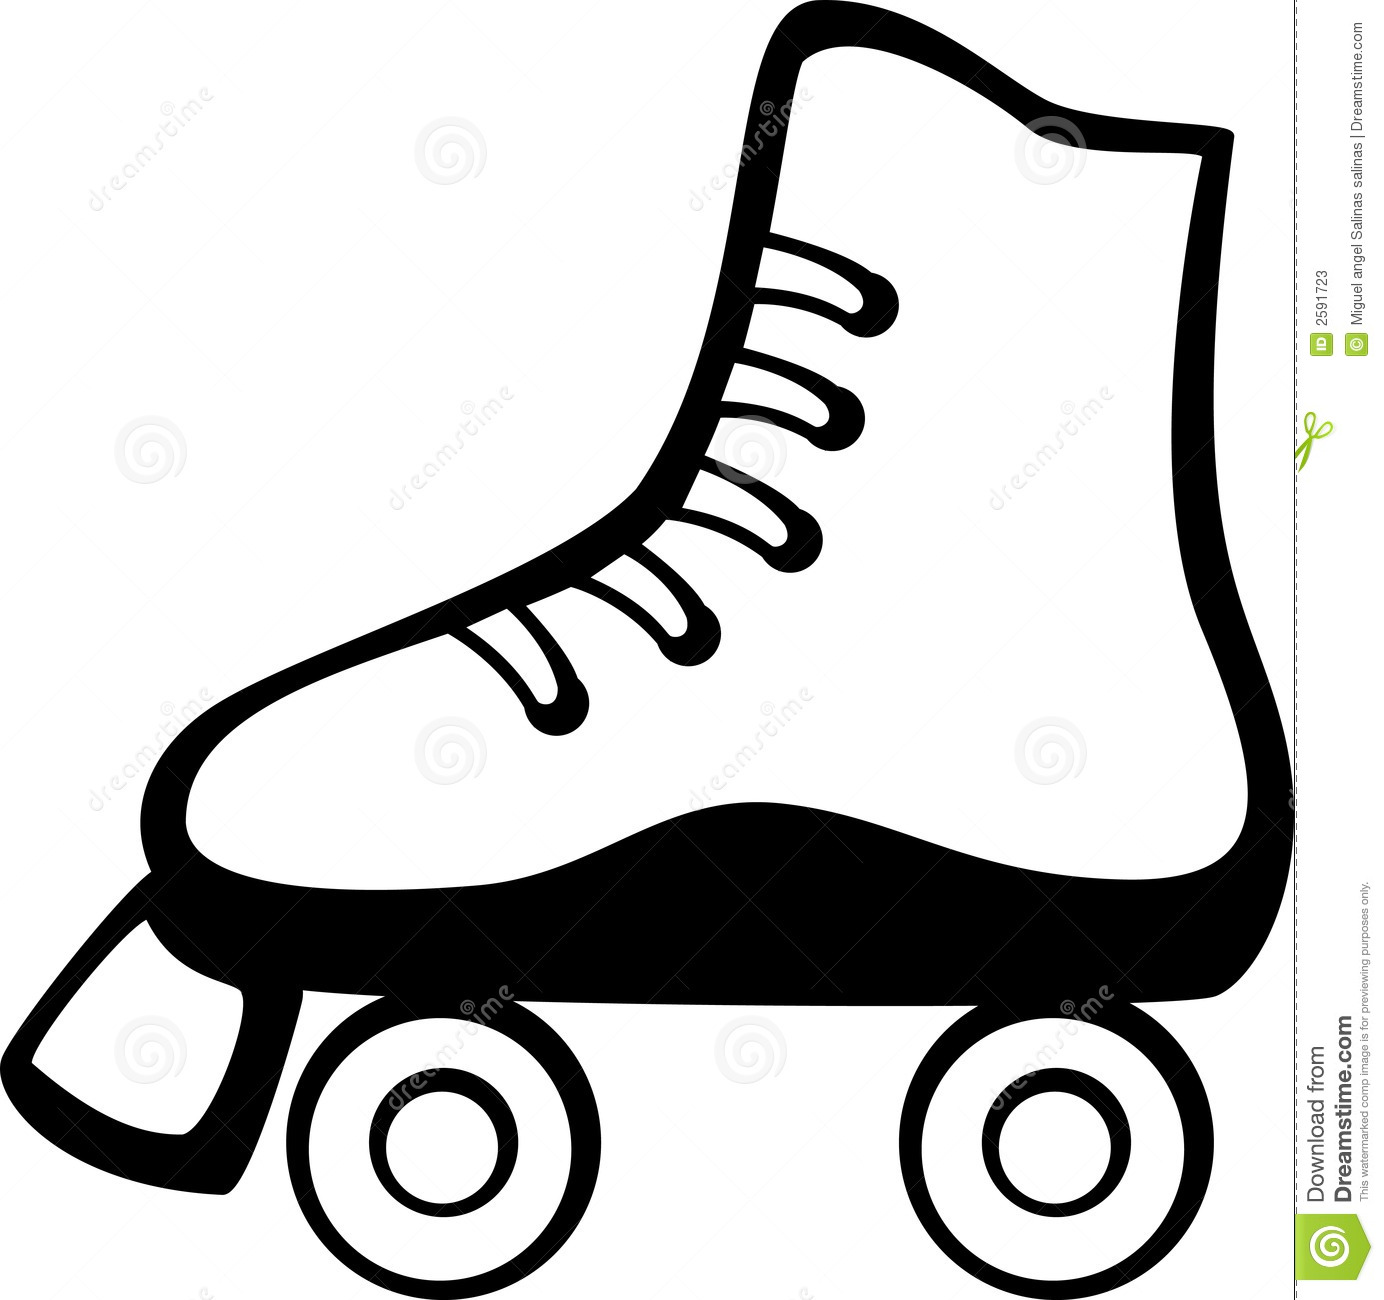 ice skates silhouette at getdrawings com free for personal use ice rh getdrawings com ice skater clip art free